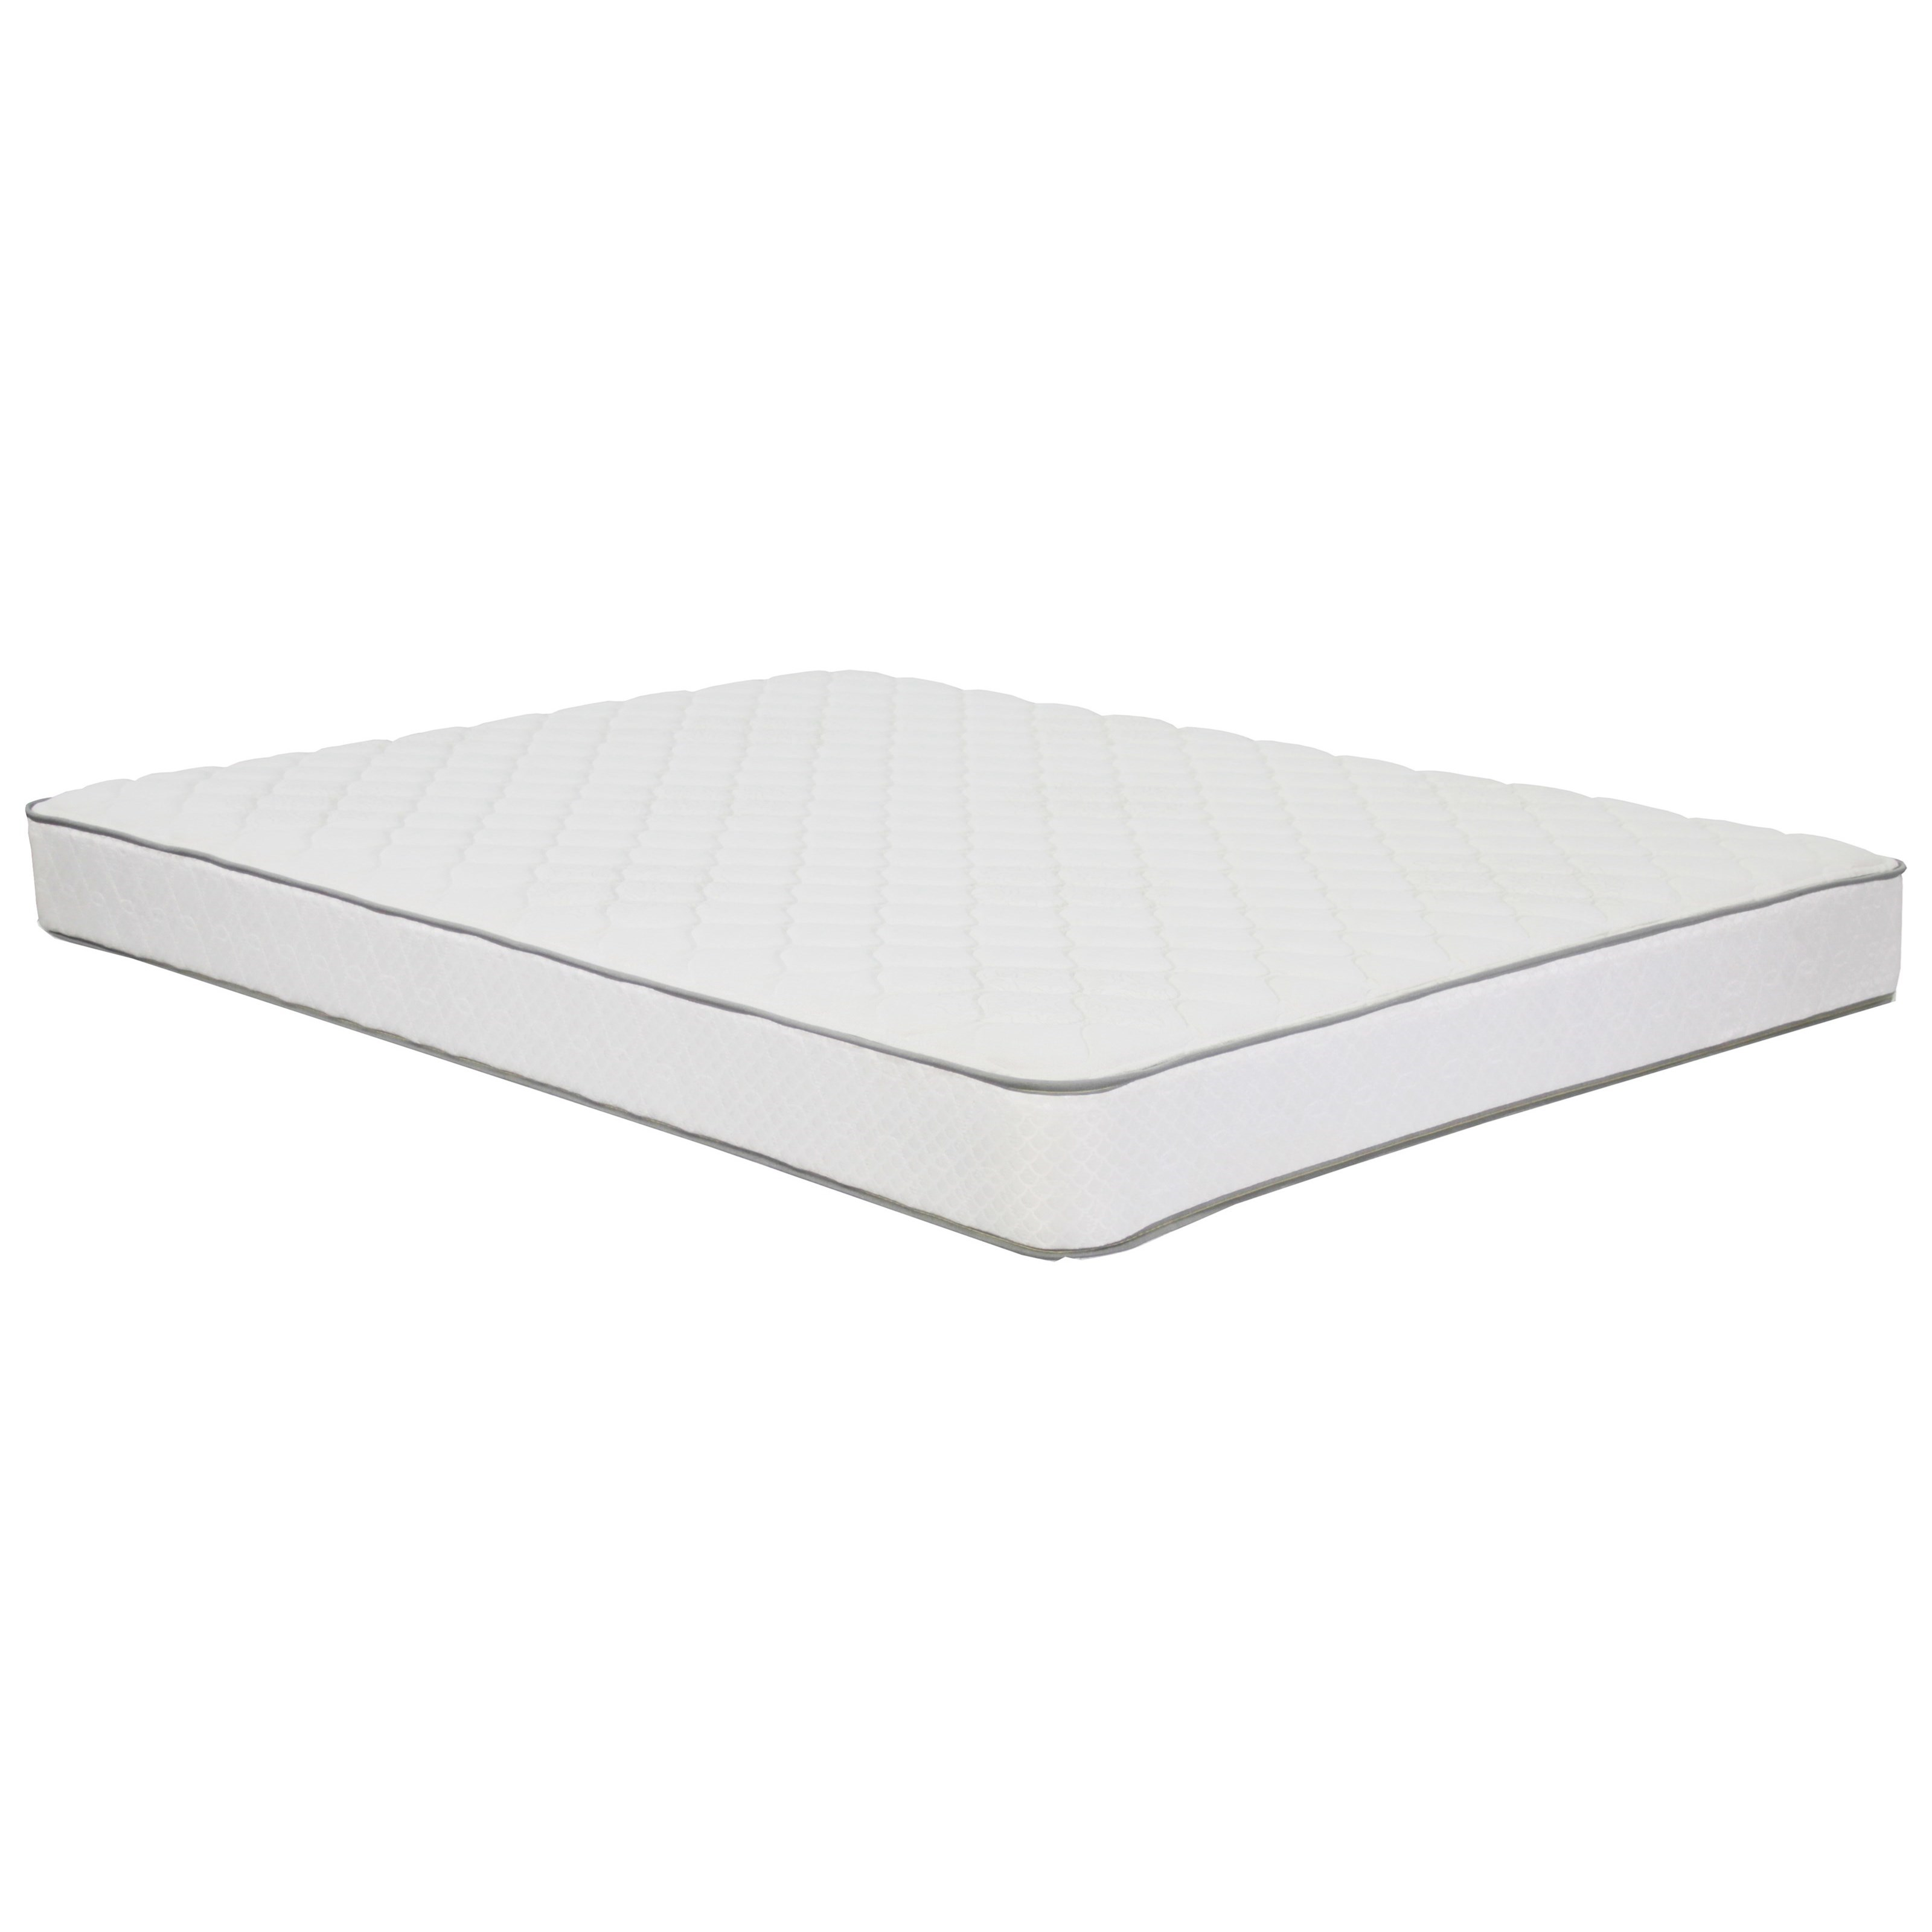 "Corsicana 600 Hotel Motel Full 6"" Firm Mattress - Item Number: 600-F"